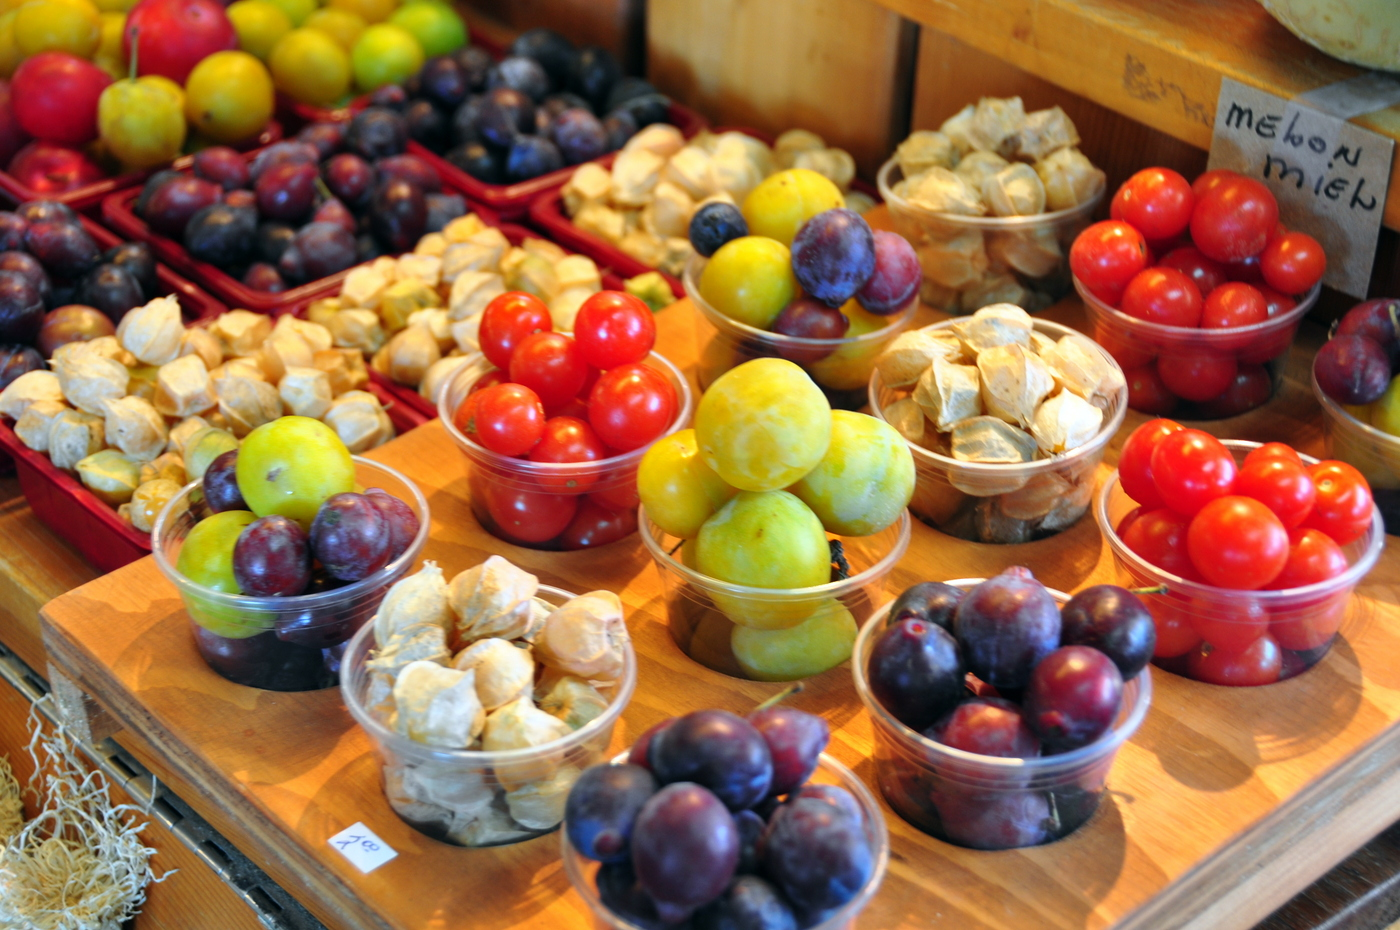 Quebec City Farmers Market - fruit, ground cherries, plums